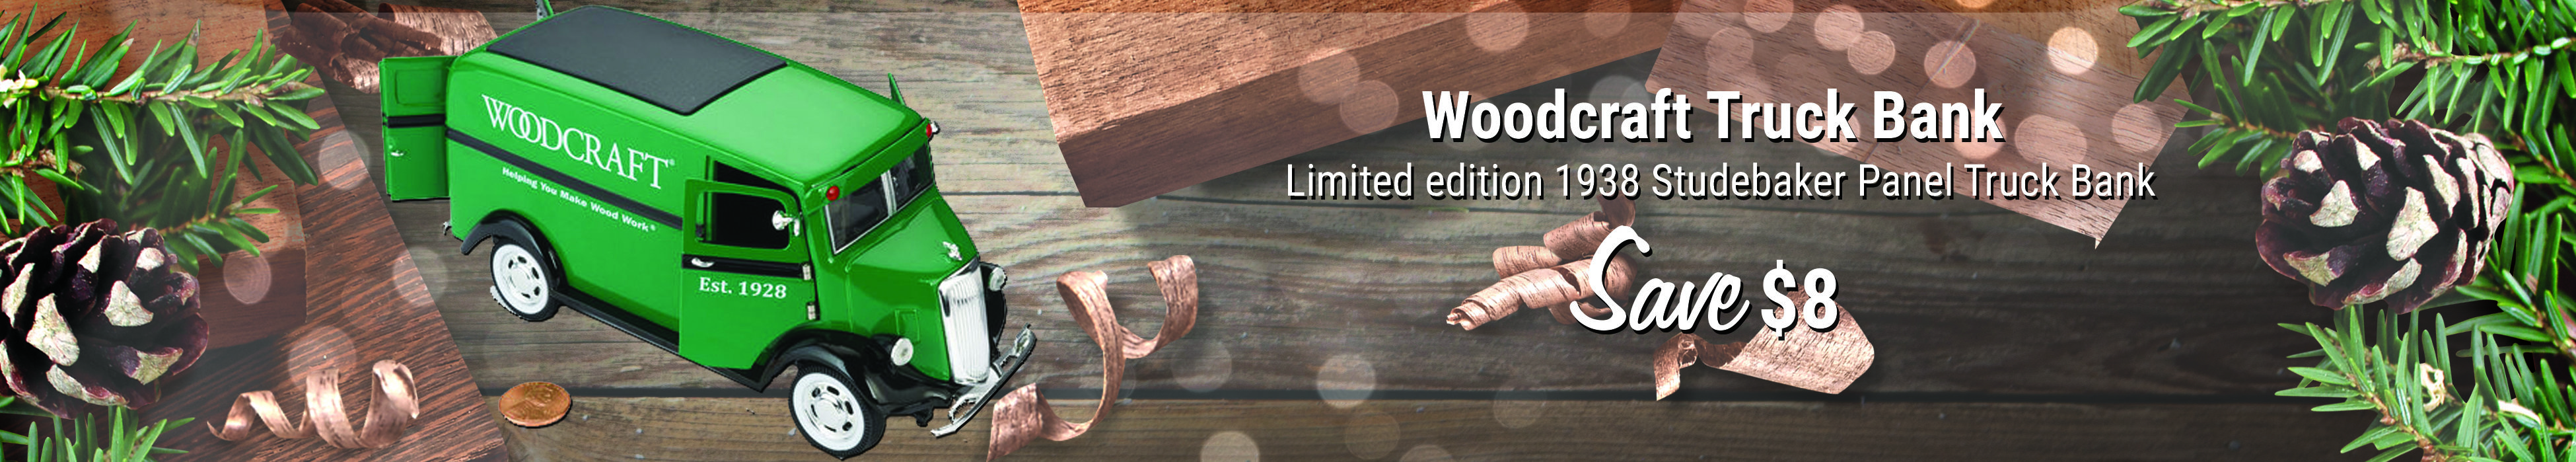 SAve $8 on Woodcraft Truck Bank